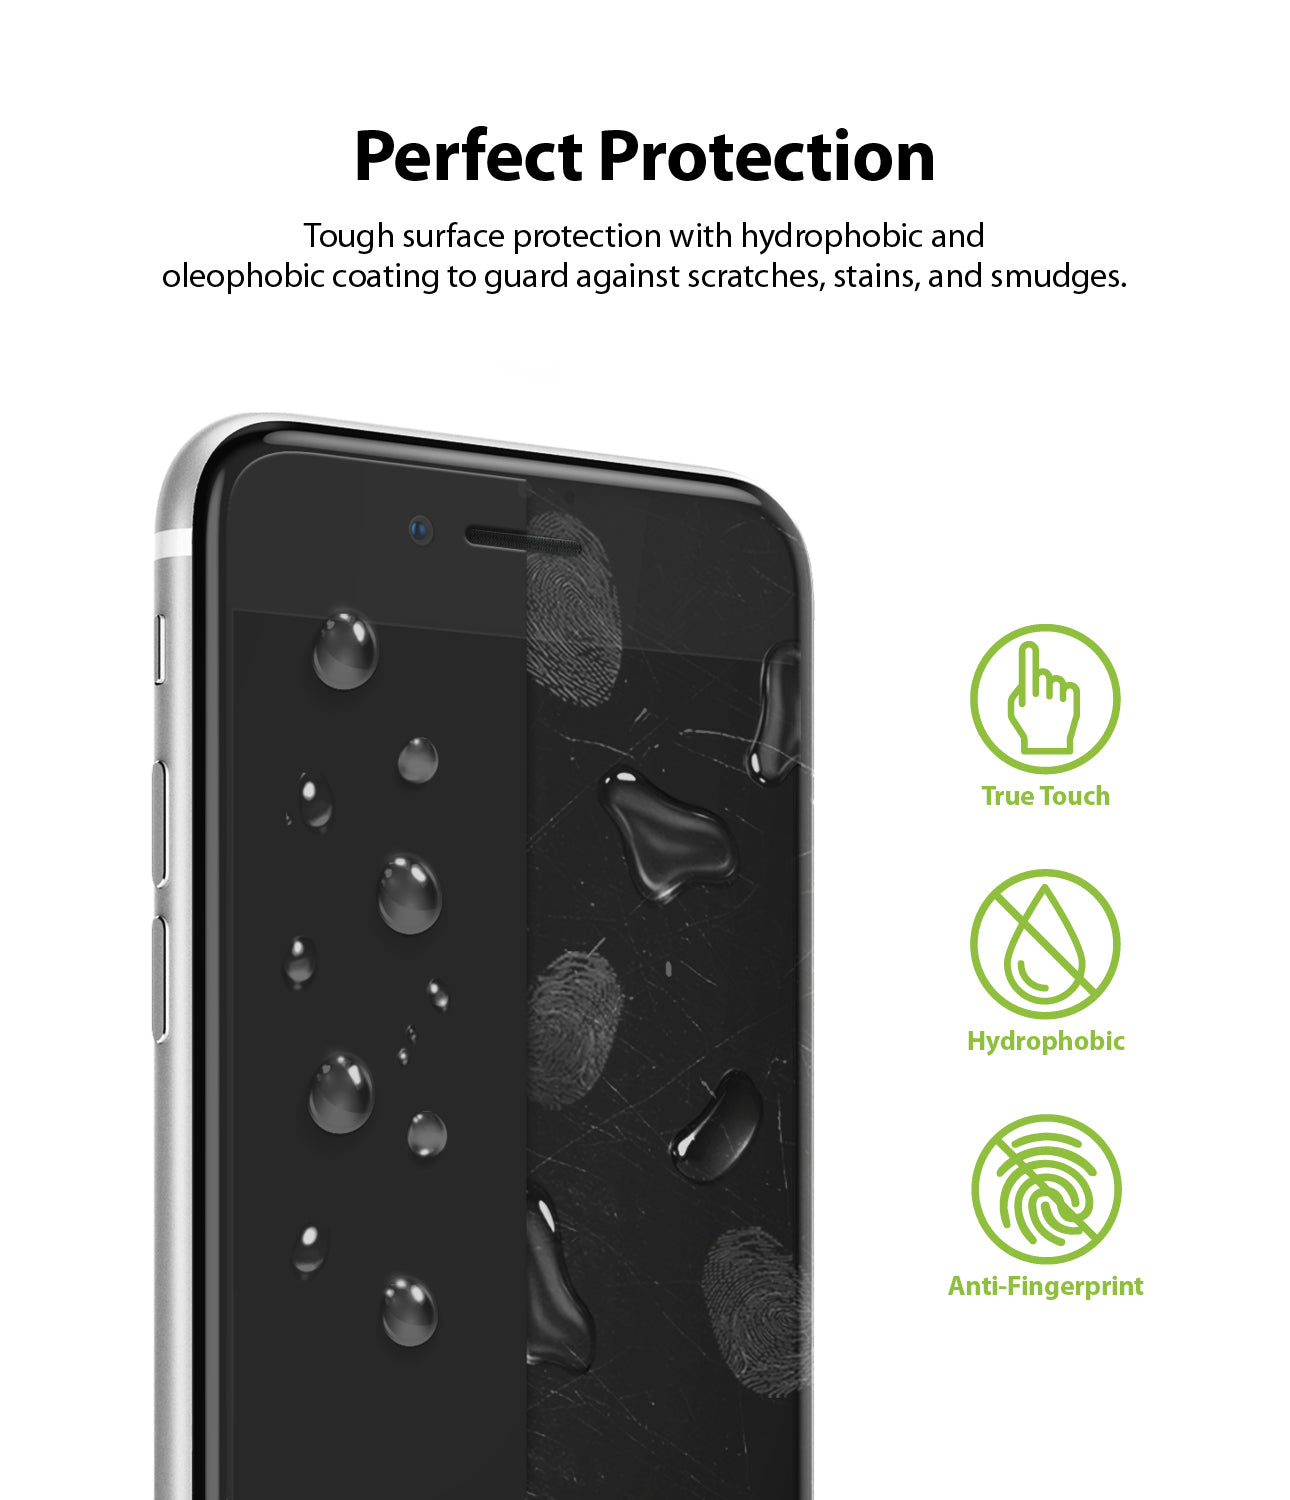 tough surface protection with hydrophobic and oleophobic coating